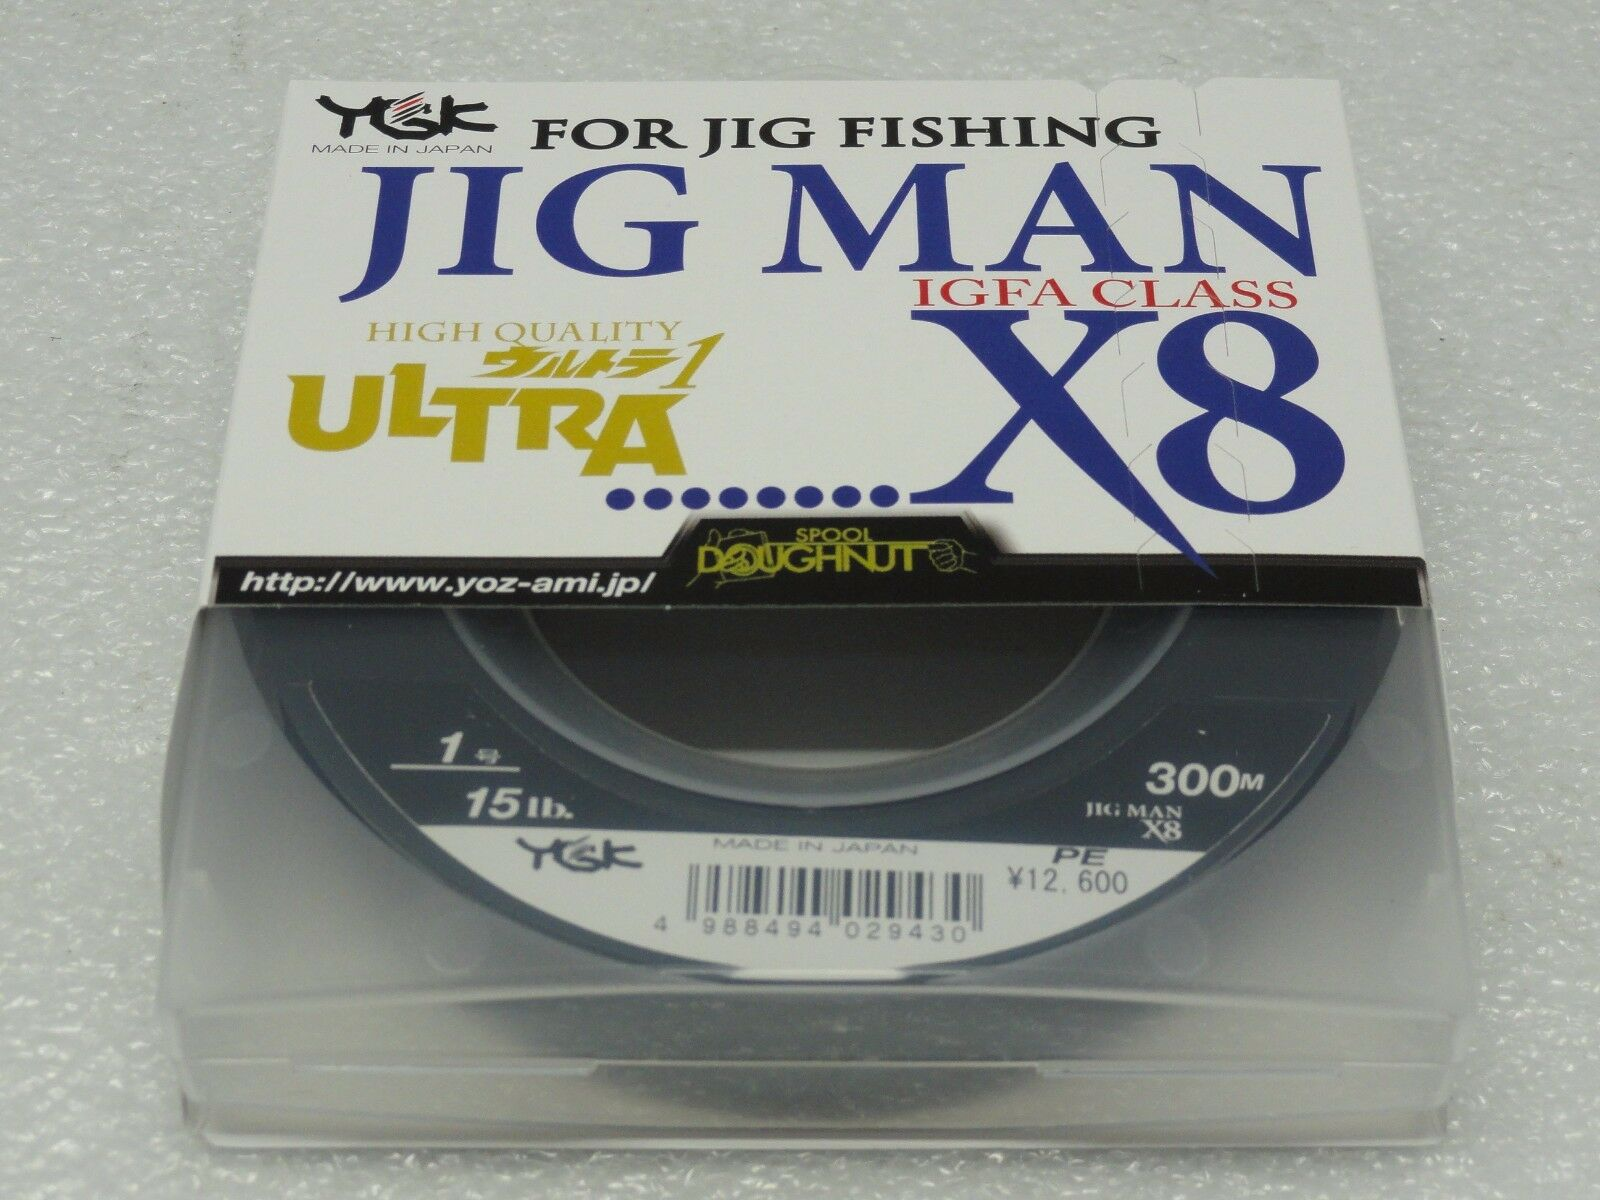 YGK JIG MAN IGFA CLASS X8 8 Braided PE 1 line SPECTRA lb 300m Made in Japan